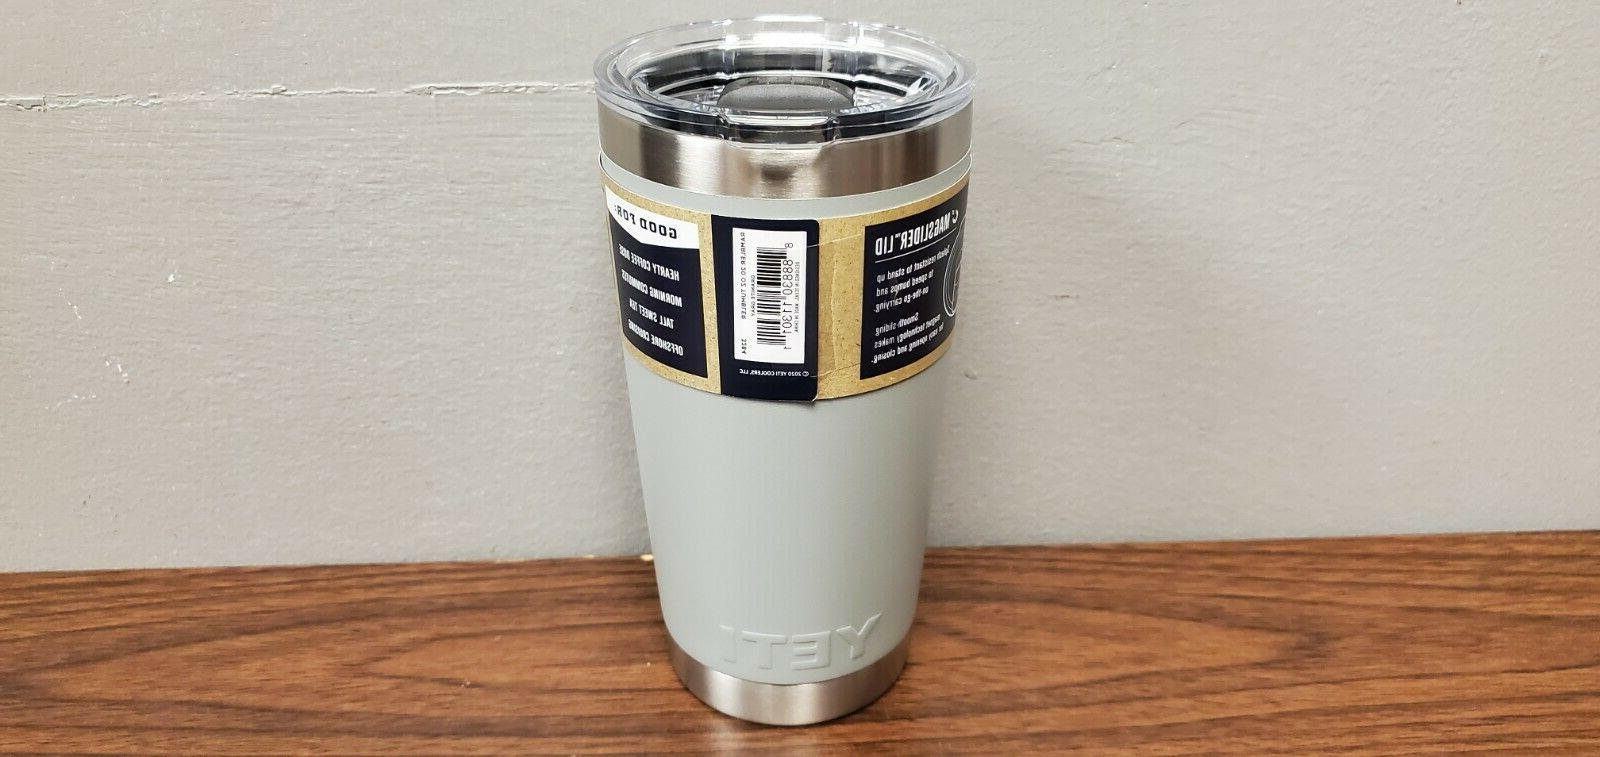 YETI Rambler 30 oz Stainless Steel Vacuum Insulated Tumbler,